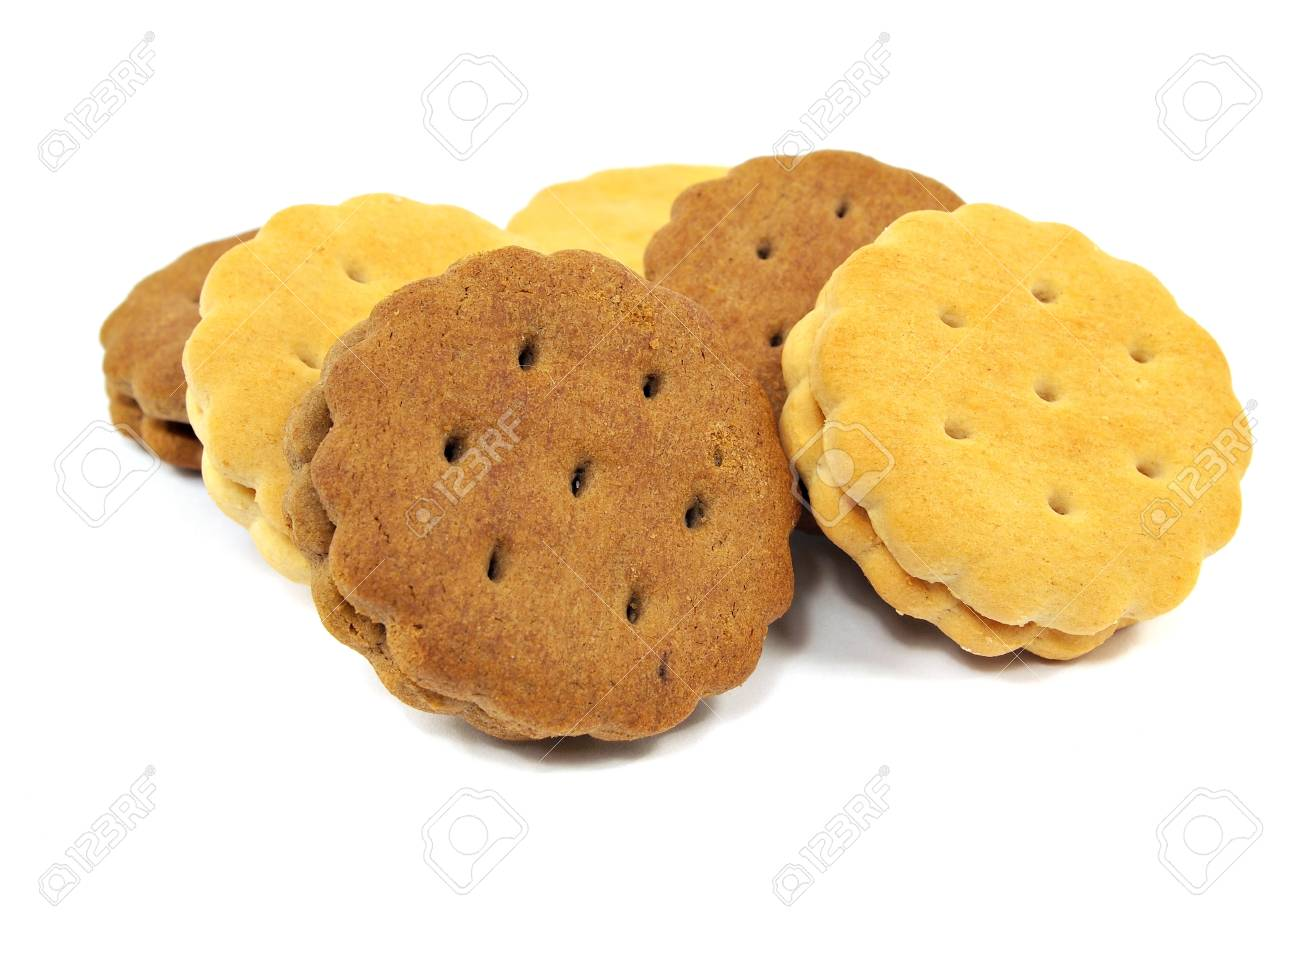 sandwich biscuits with cream and chocolate fillings on a white background Stock Photo - 16173795